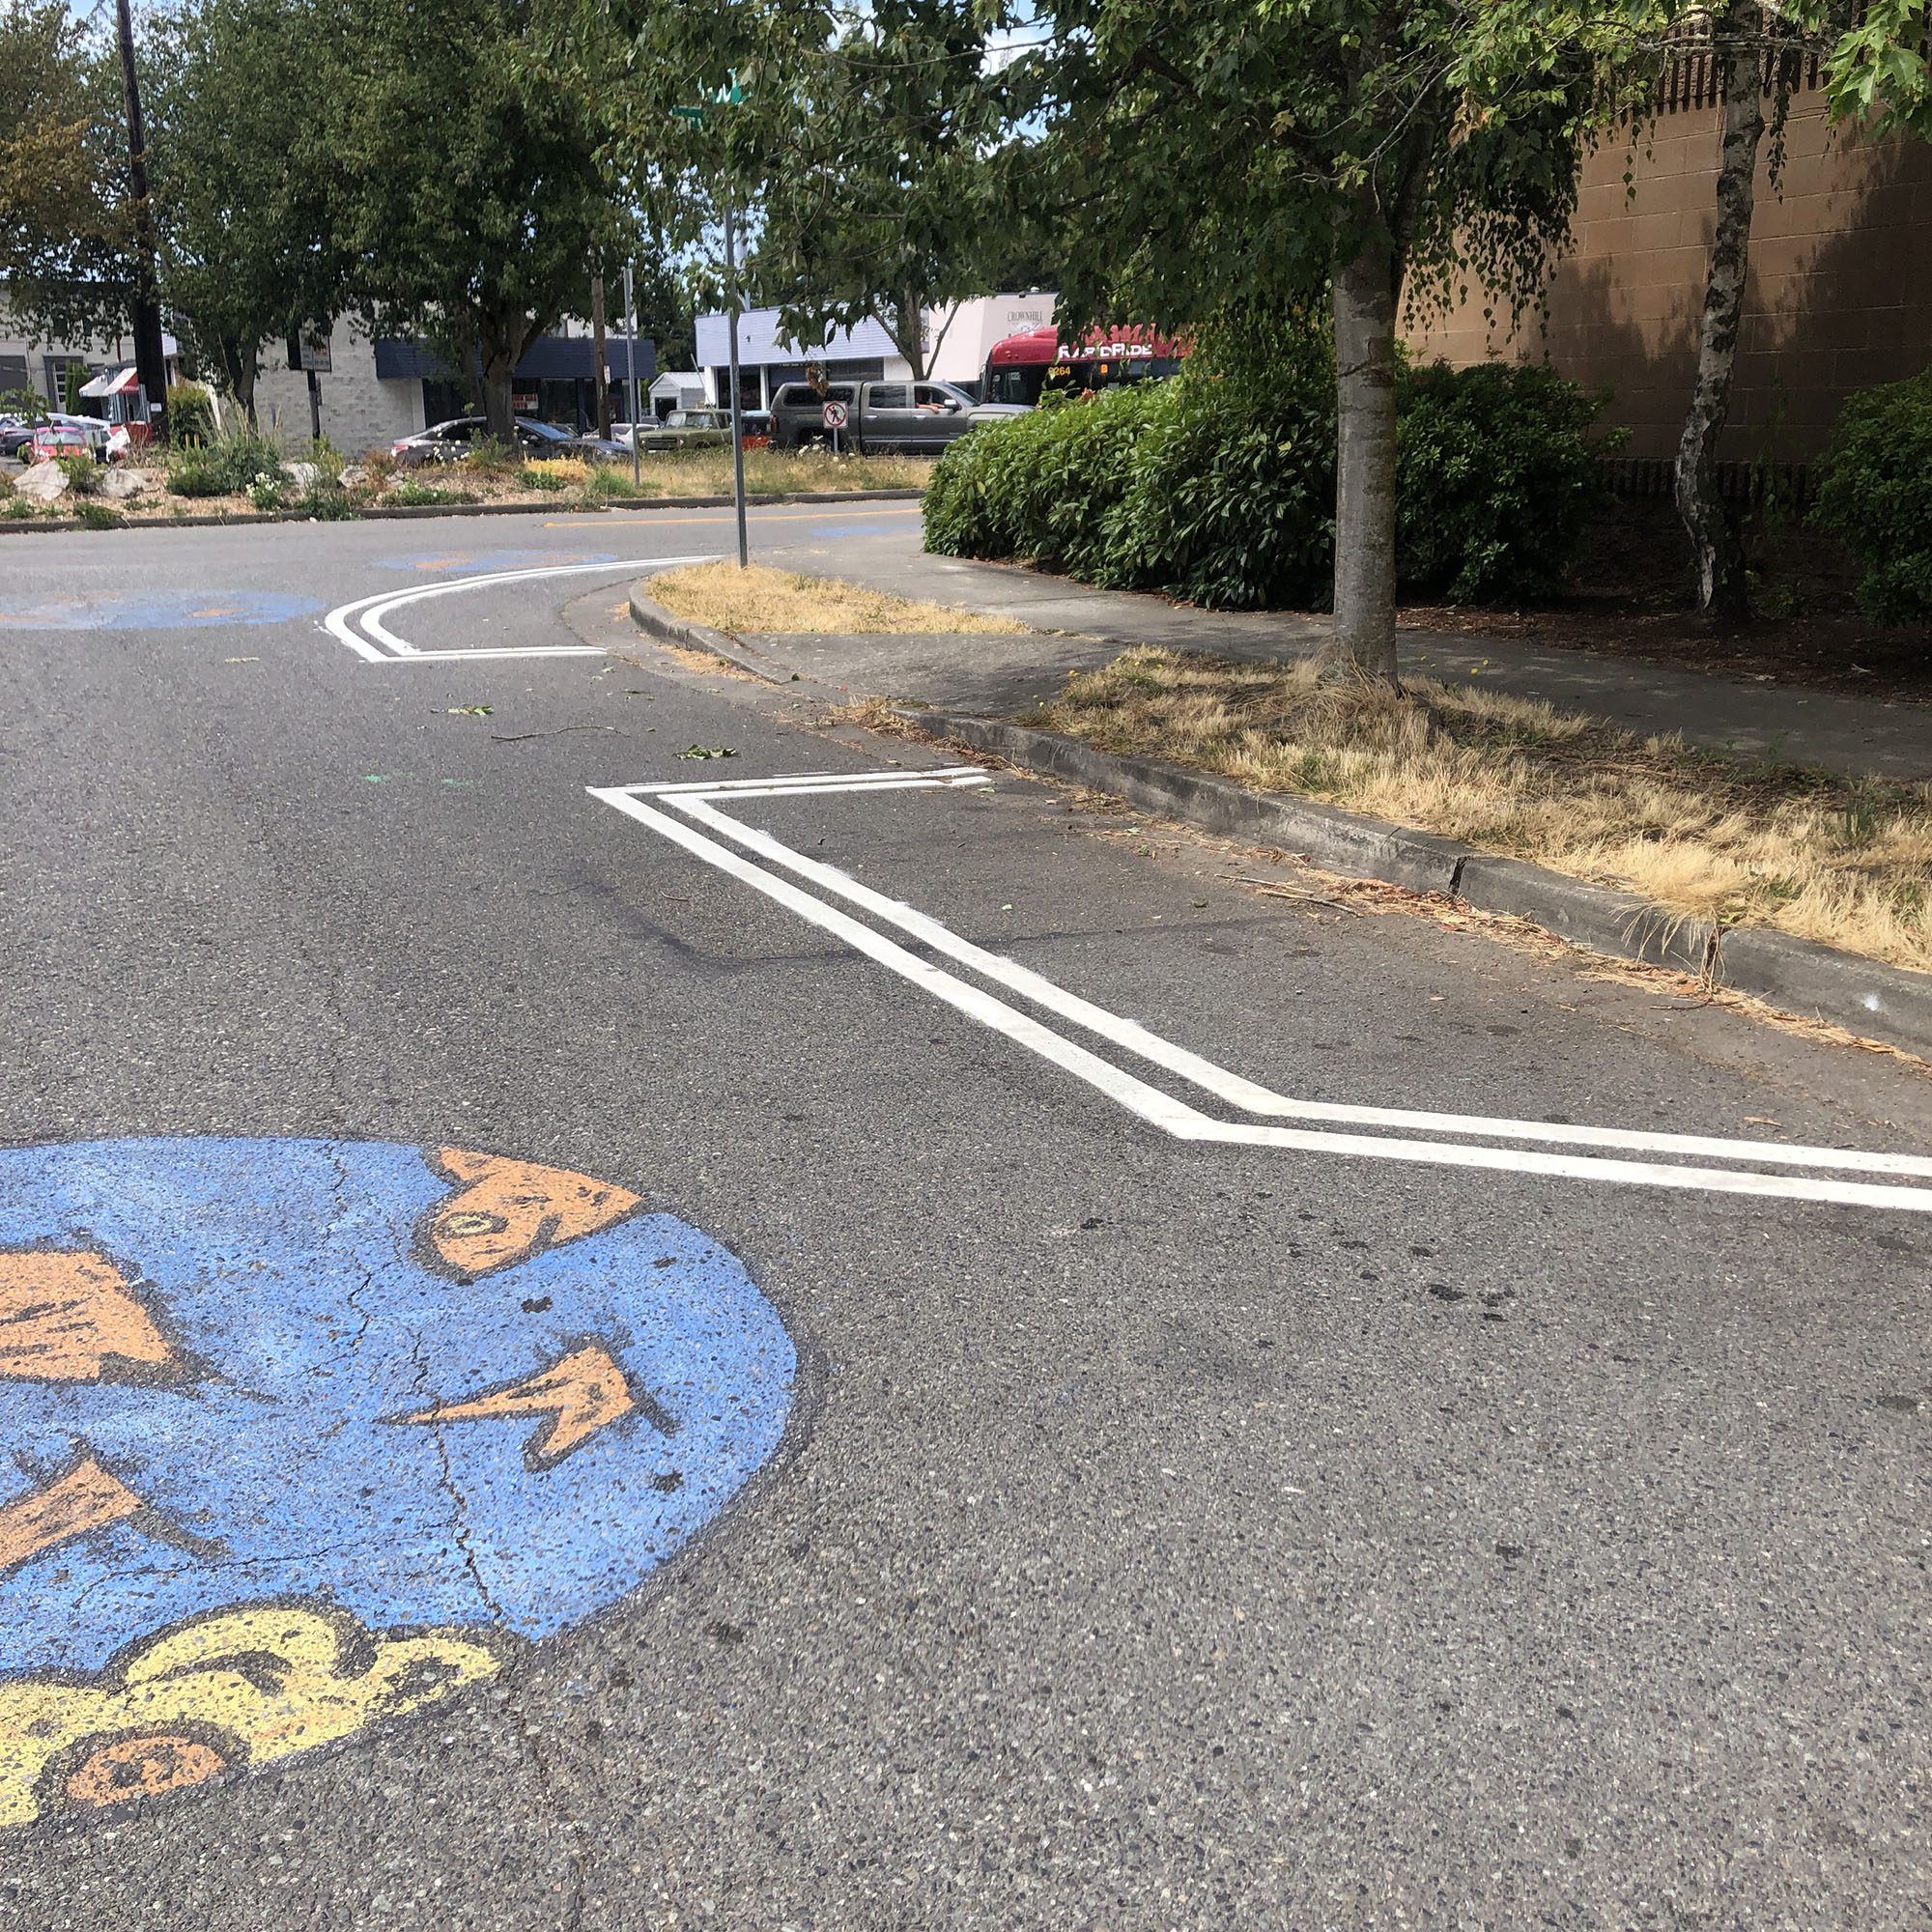 lines painted on the road, ready for the planters